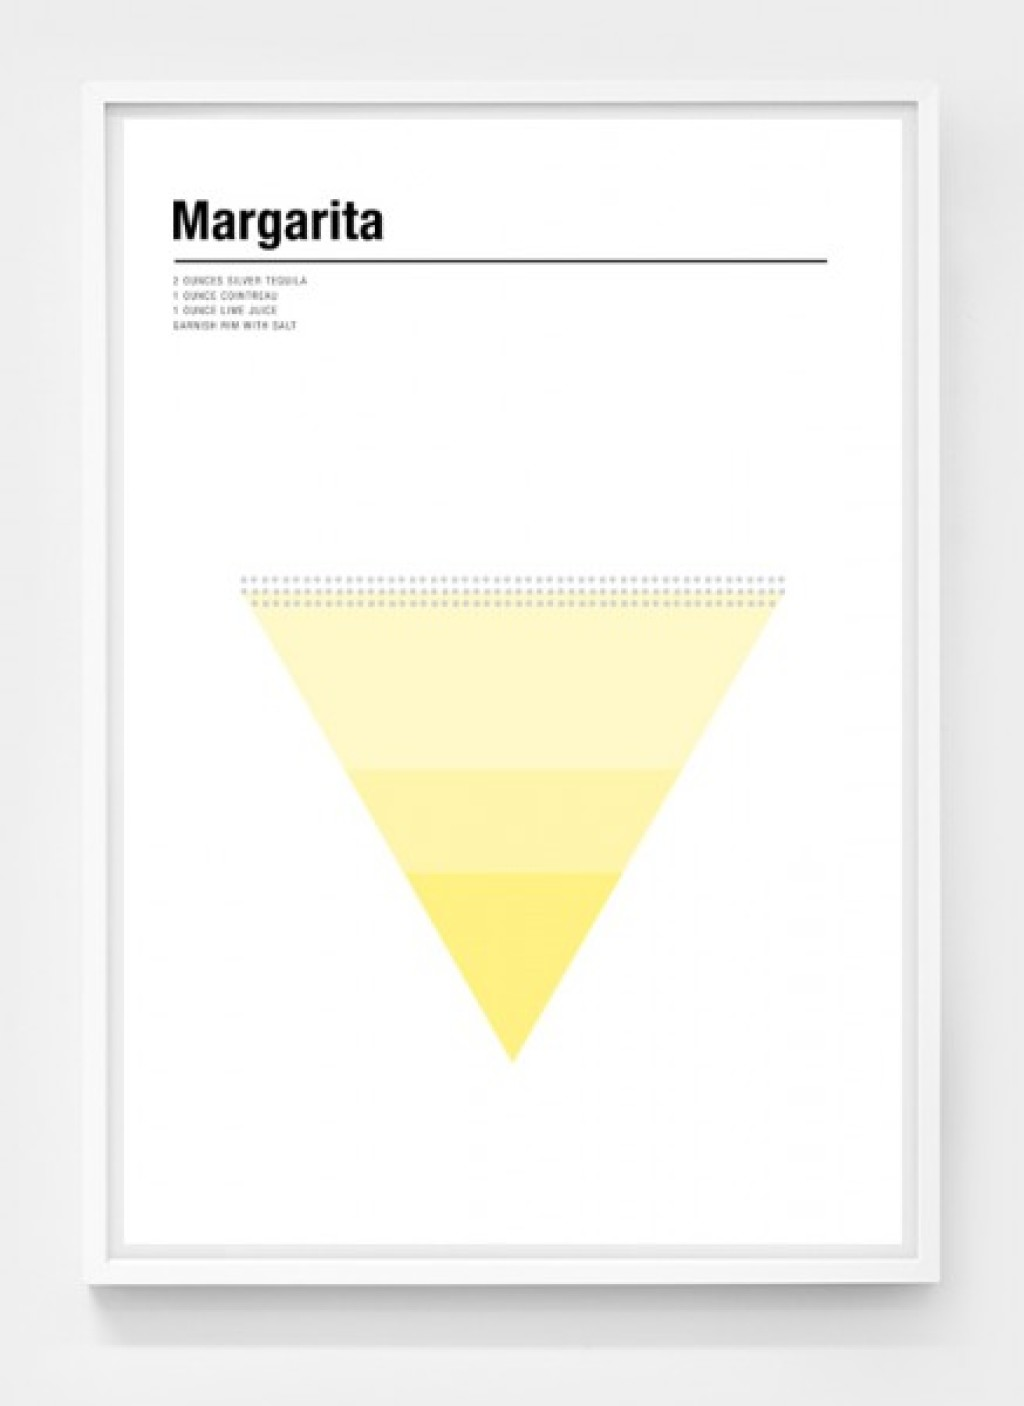 margarita-minimalist-cocktail-poster-by-nick-barclay-designs